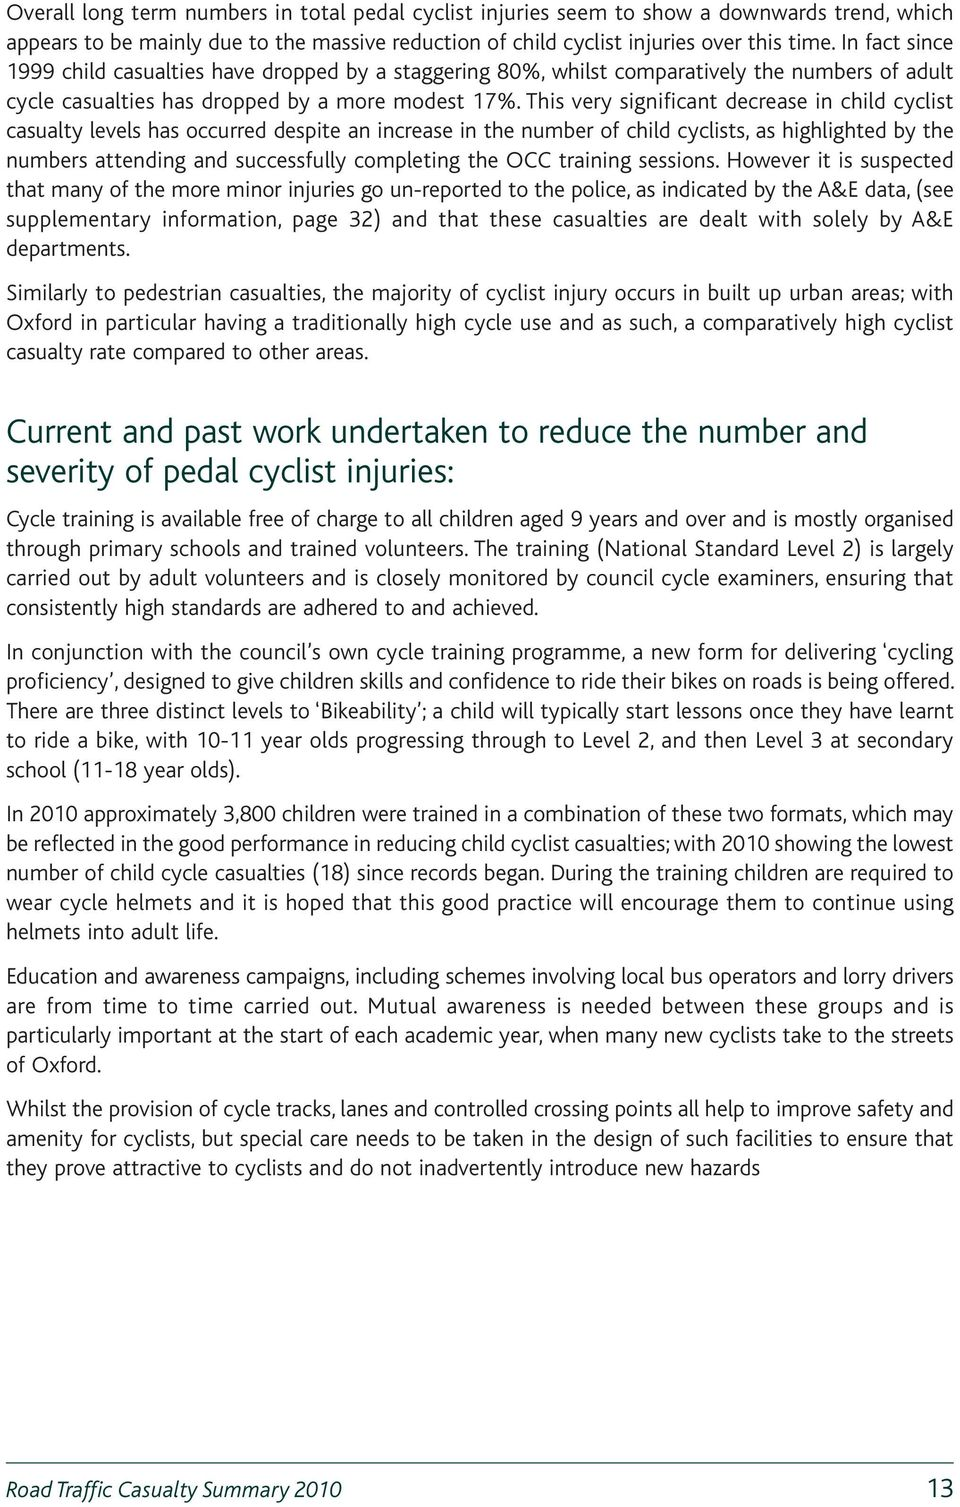 This very significant decrease in child cyclist casualty levels has occurred despite an increase in the number of child cyclists, as highlighted by the numbers attending and successfully completing